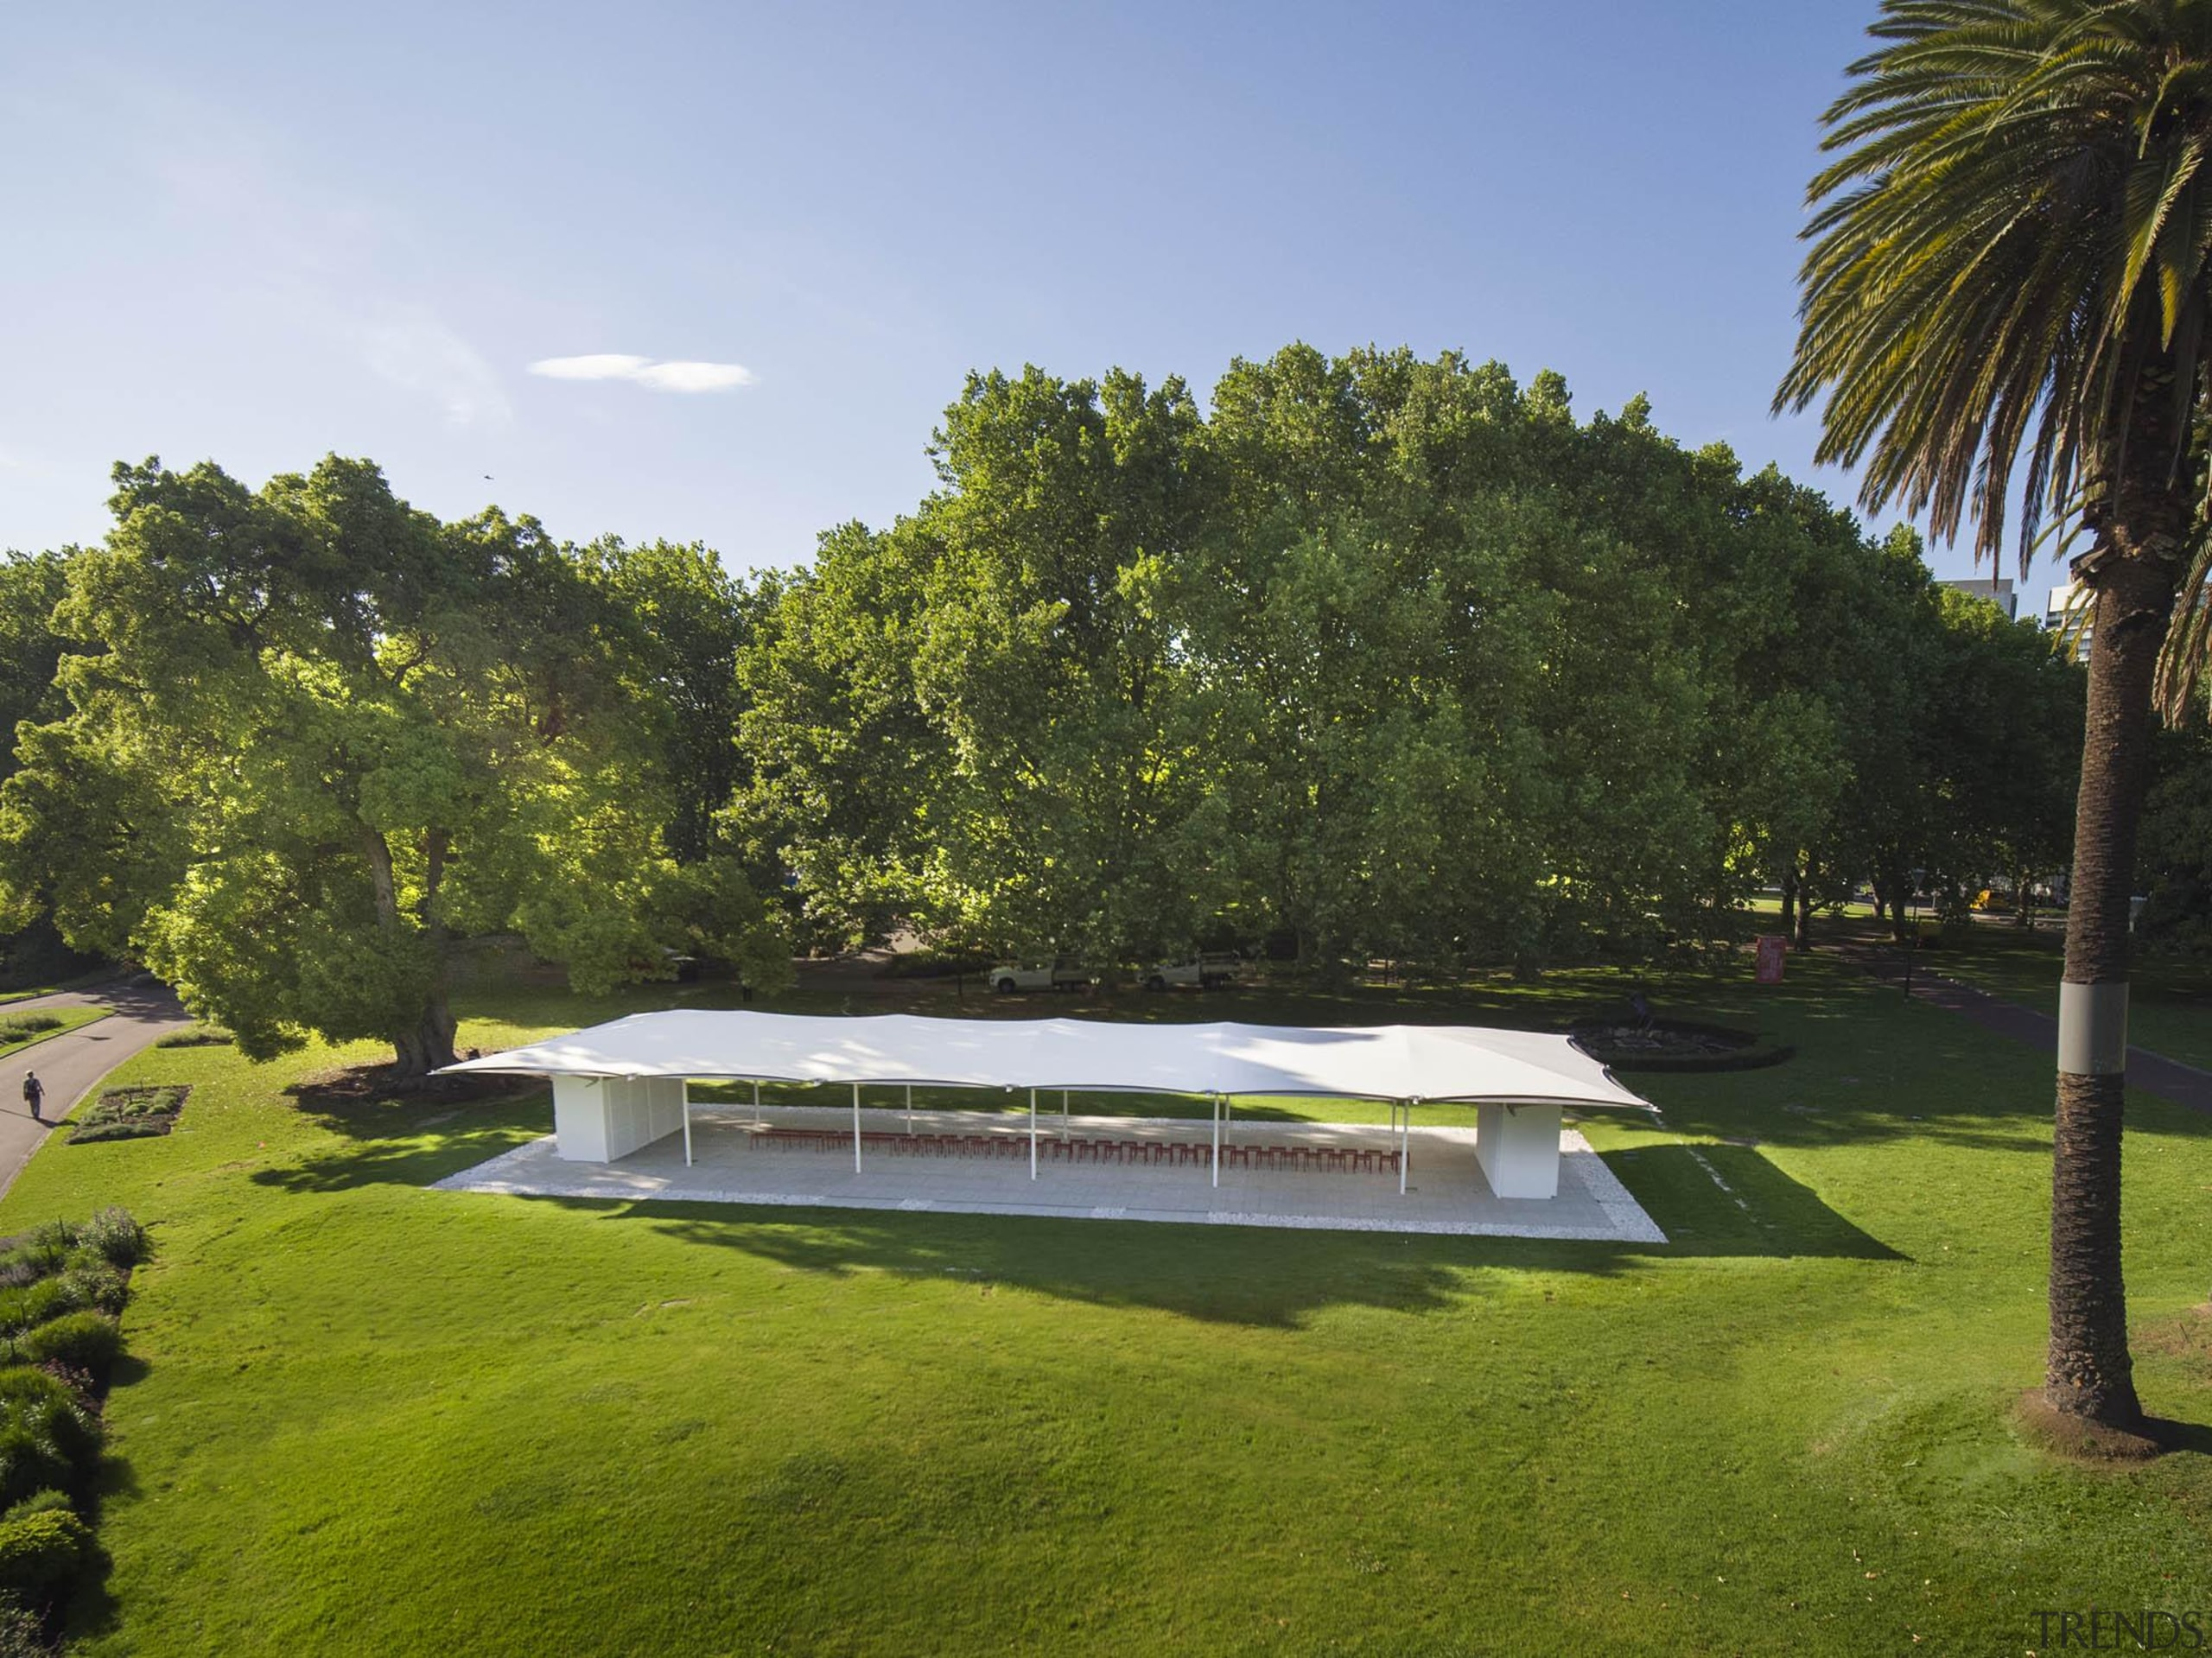 Inspired by architect Glenn Murcutt's career, 2019 MPavilion architecture, building, estate, grass, home, house, lawn, leisure, pavilion, plant community, property, real estate, shade, tree, brown